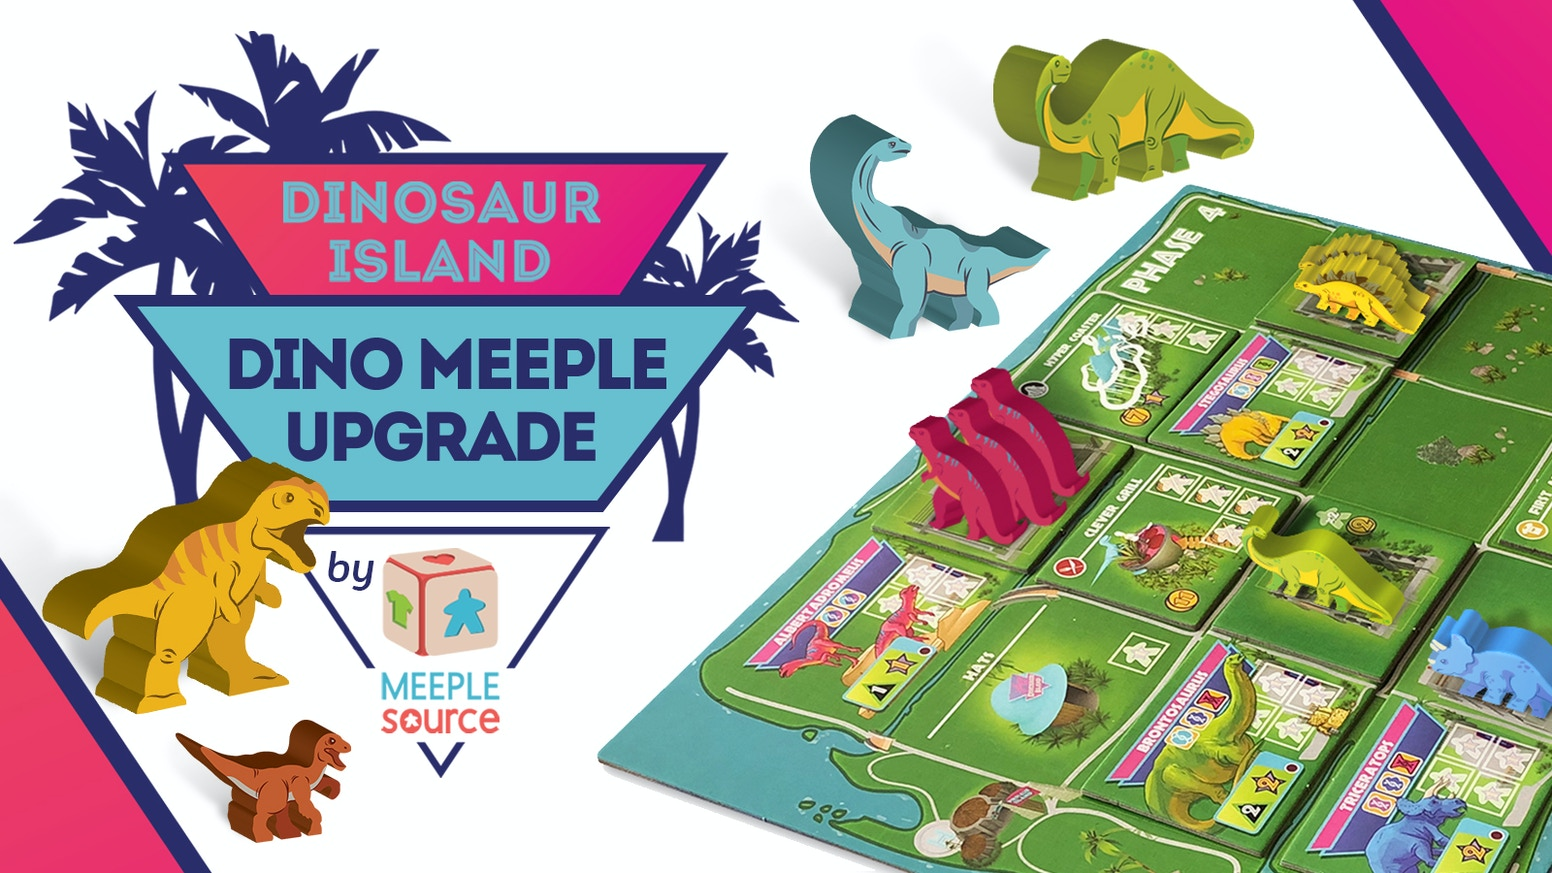 Beautiful painted dinosaur meeples for Dinosaur Island that match the art on the Dino Recipe Tiles! The ultimate Meeple Source upgrade!